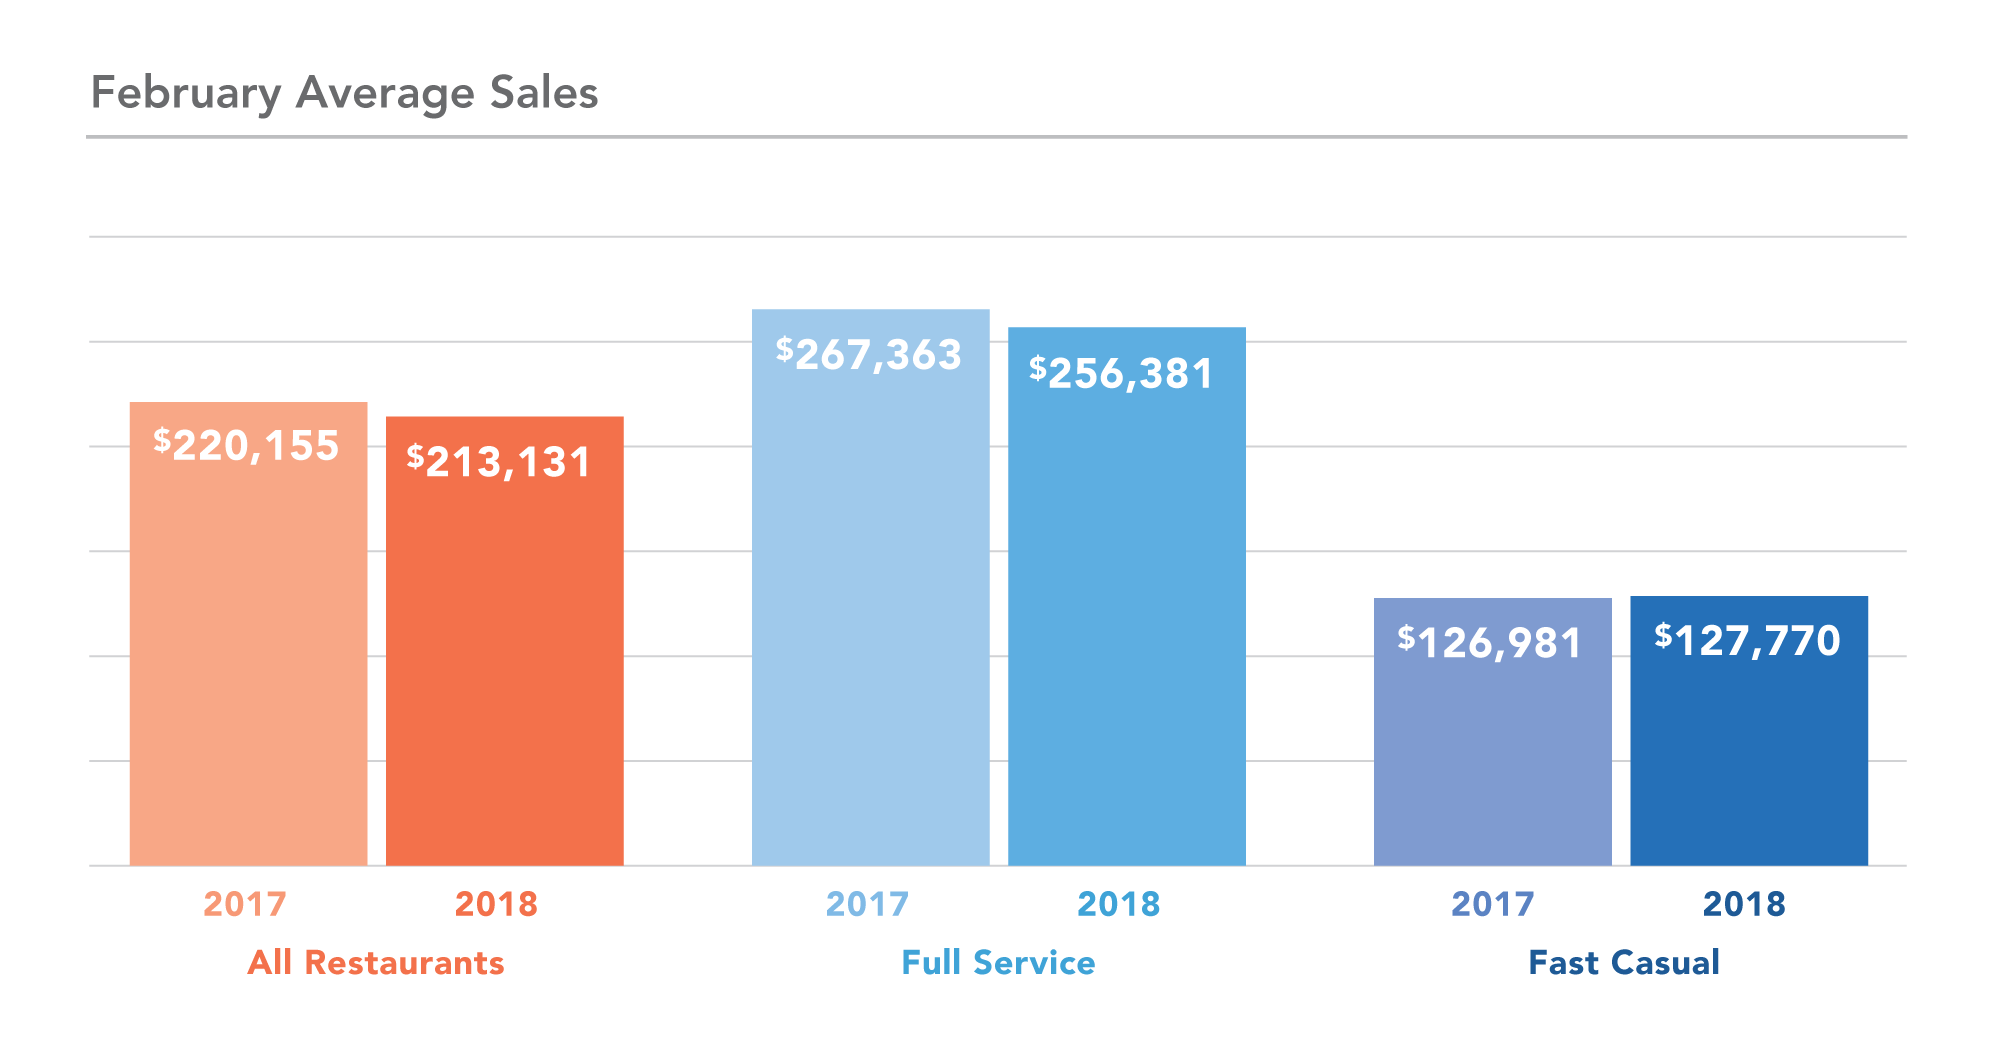 Year-over-year Sales Trend